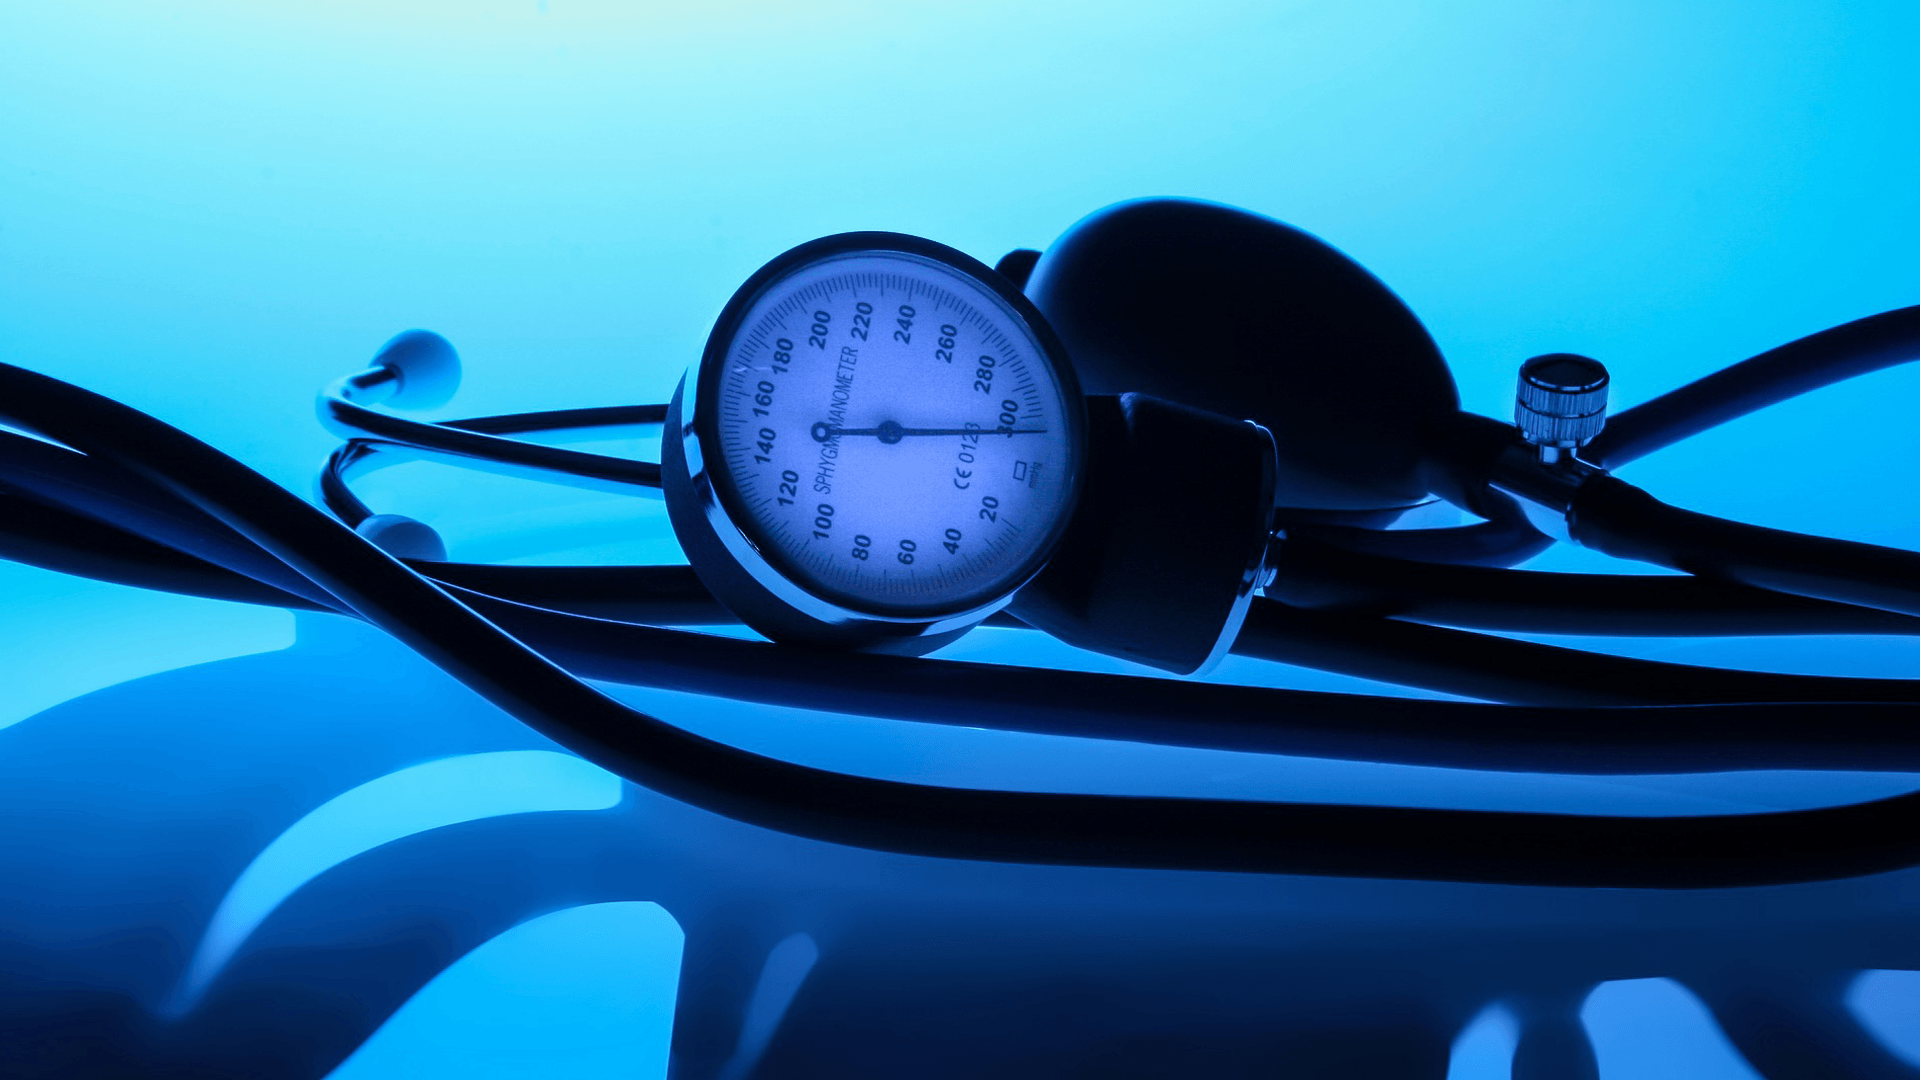 Blood pressure is a vital measure that can be easy to gauge.